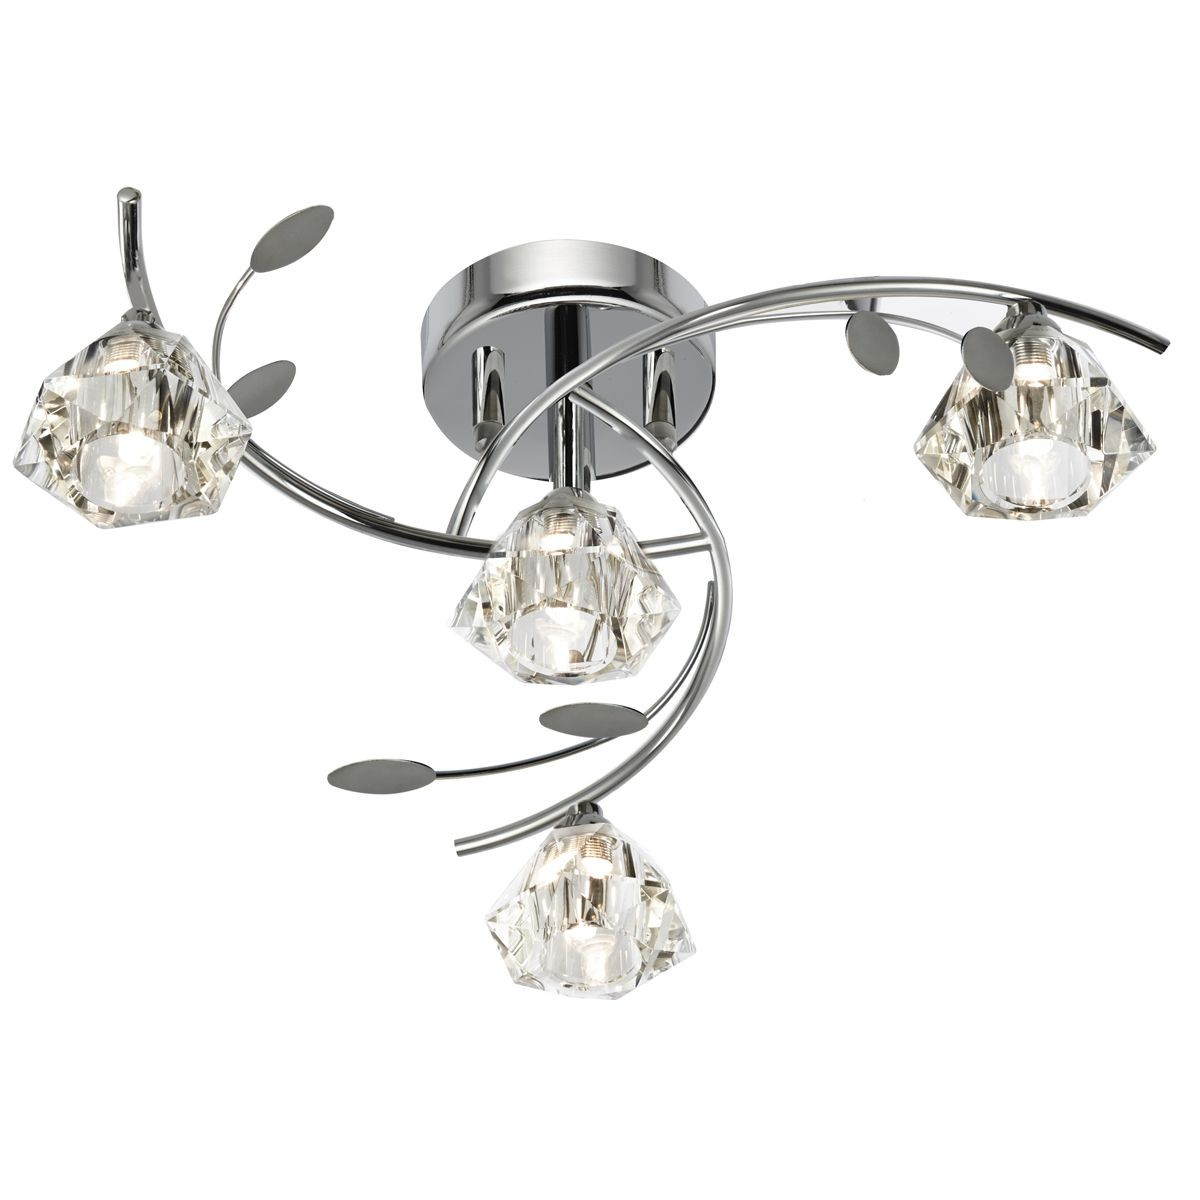 Sierra Semi Flush Ceiling Light